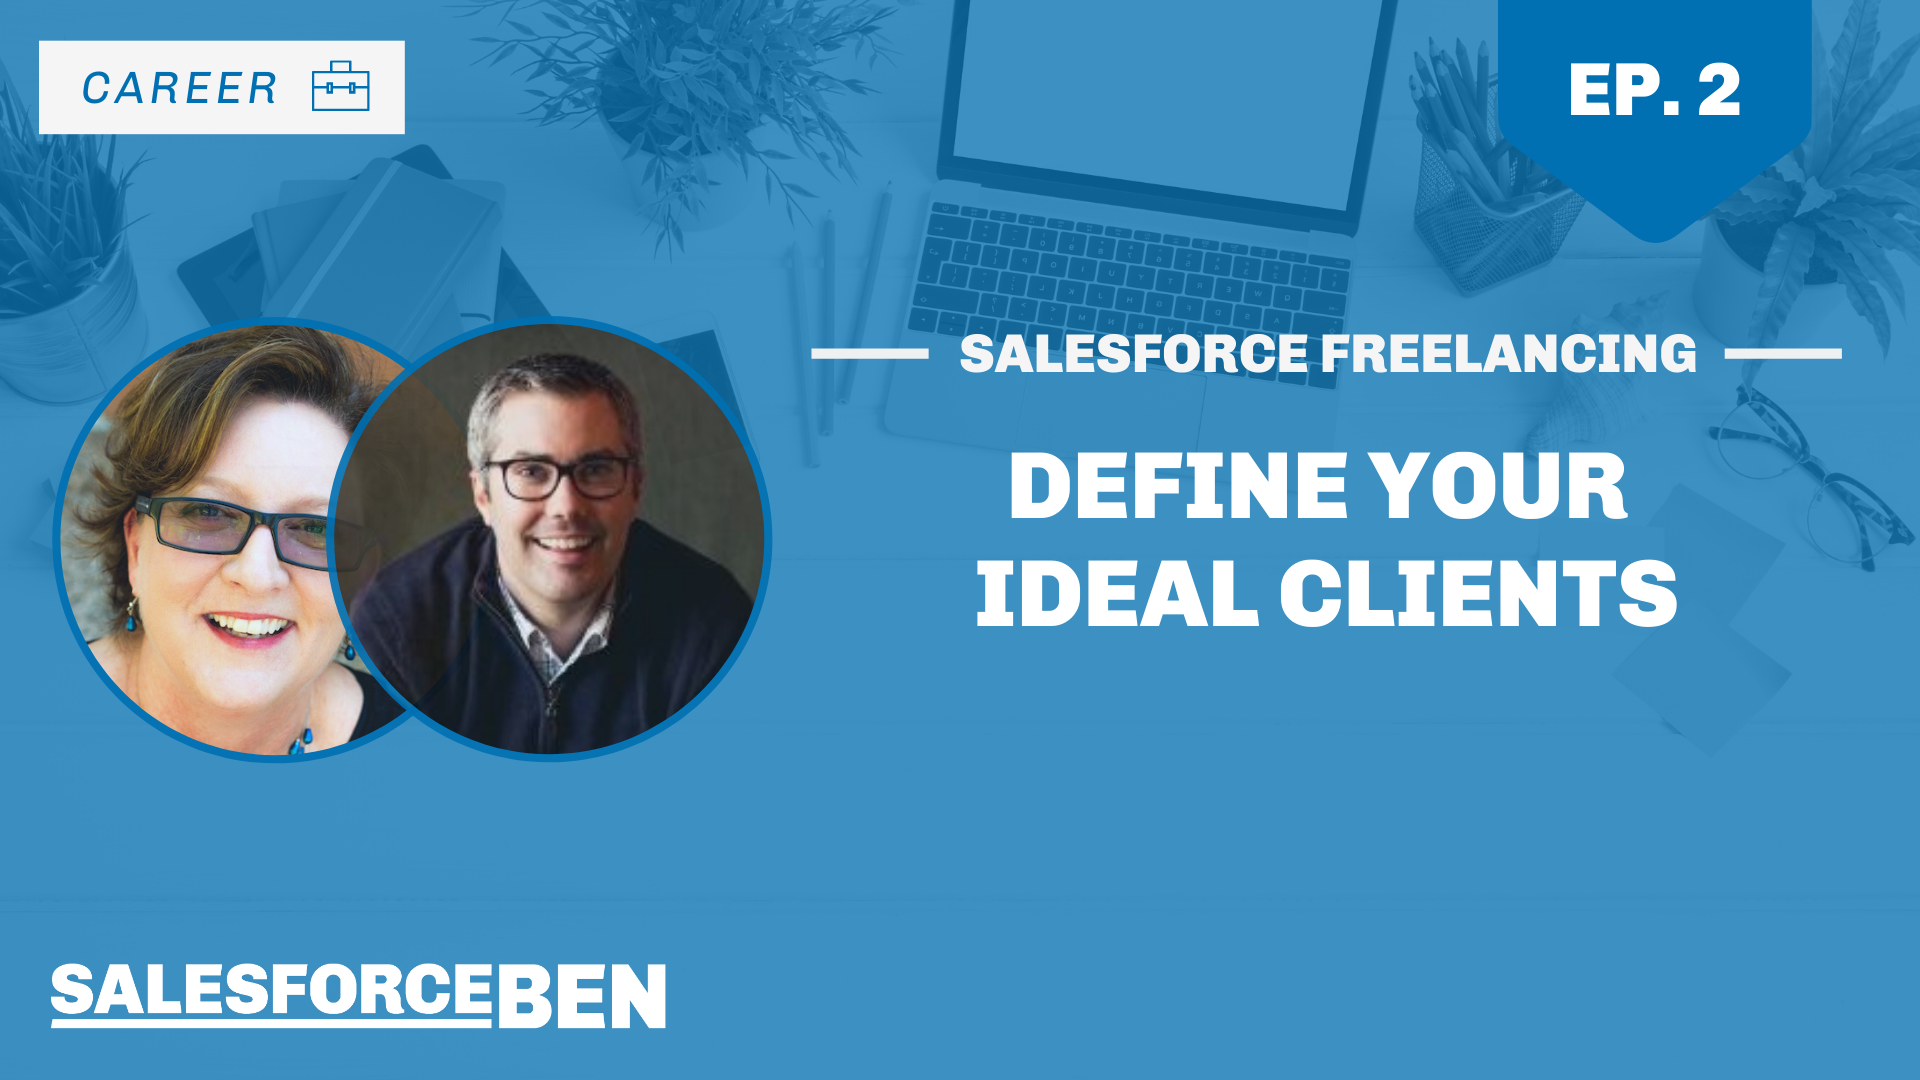 Salesforce Freelancing: Define Your Ideal Clients (Ep. 2)